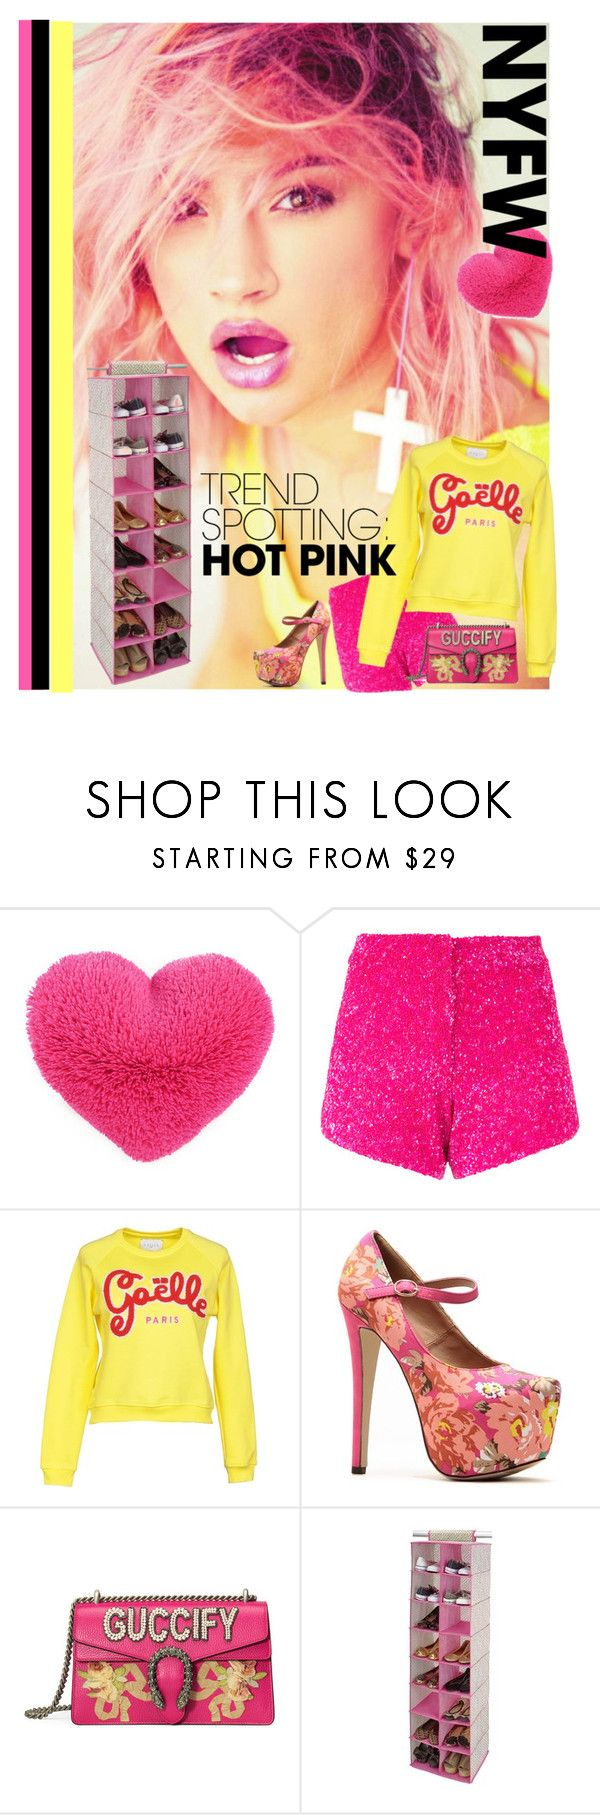 """warm up your look w/the hottest spring trends"" by diananicoleparsons ❤ liked on Polyvore featuring Manish Arora, GaÃ«lle Bonheur, Gucci, contestentry and NYFWHotPink"